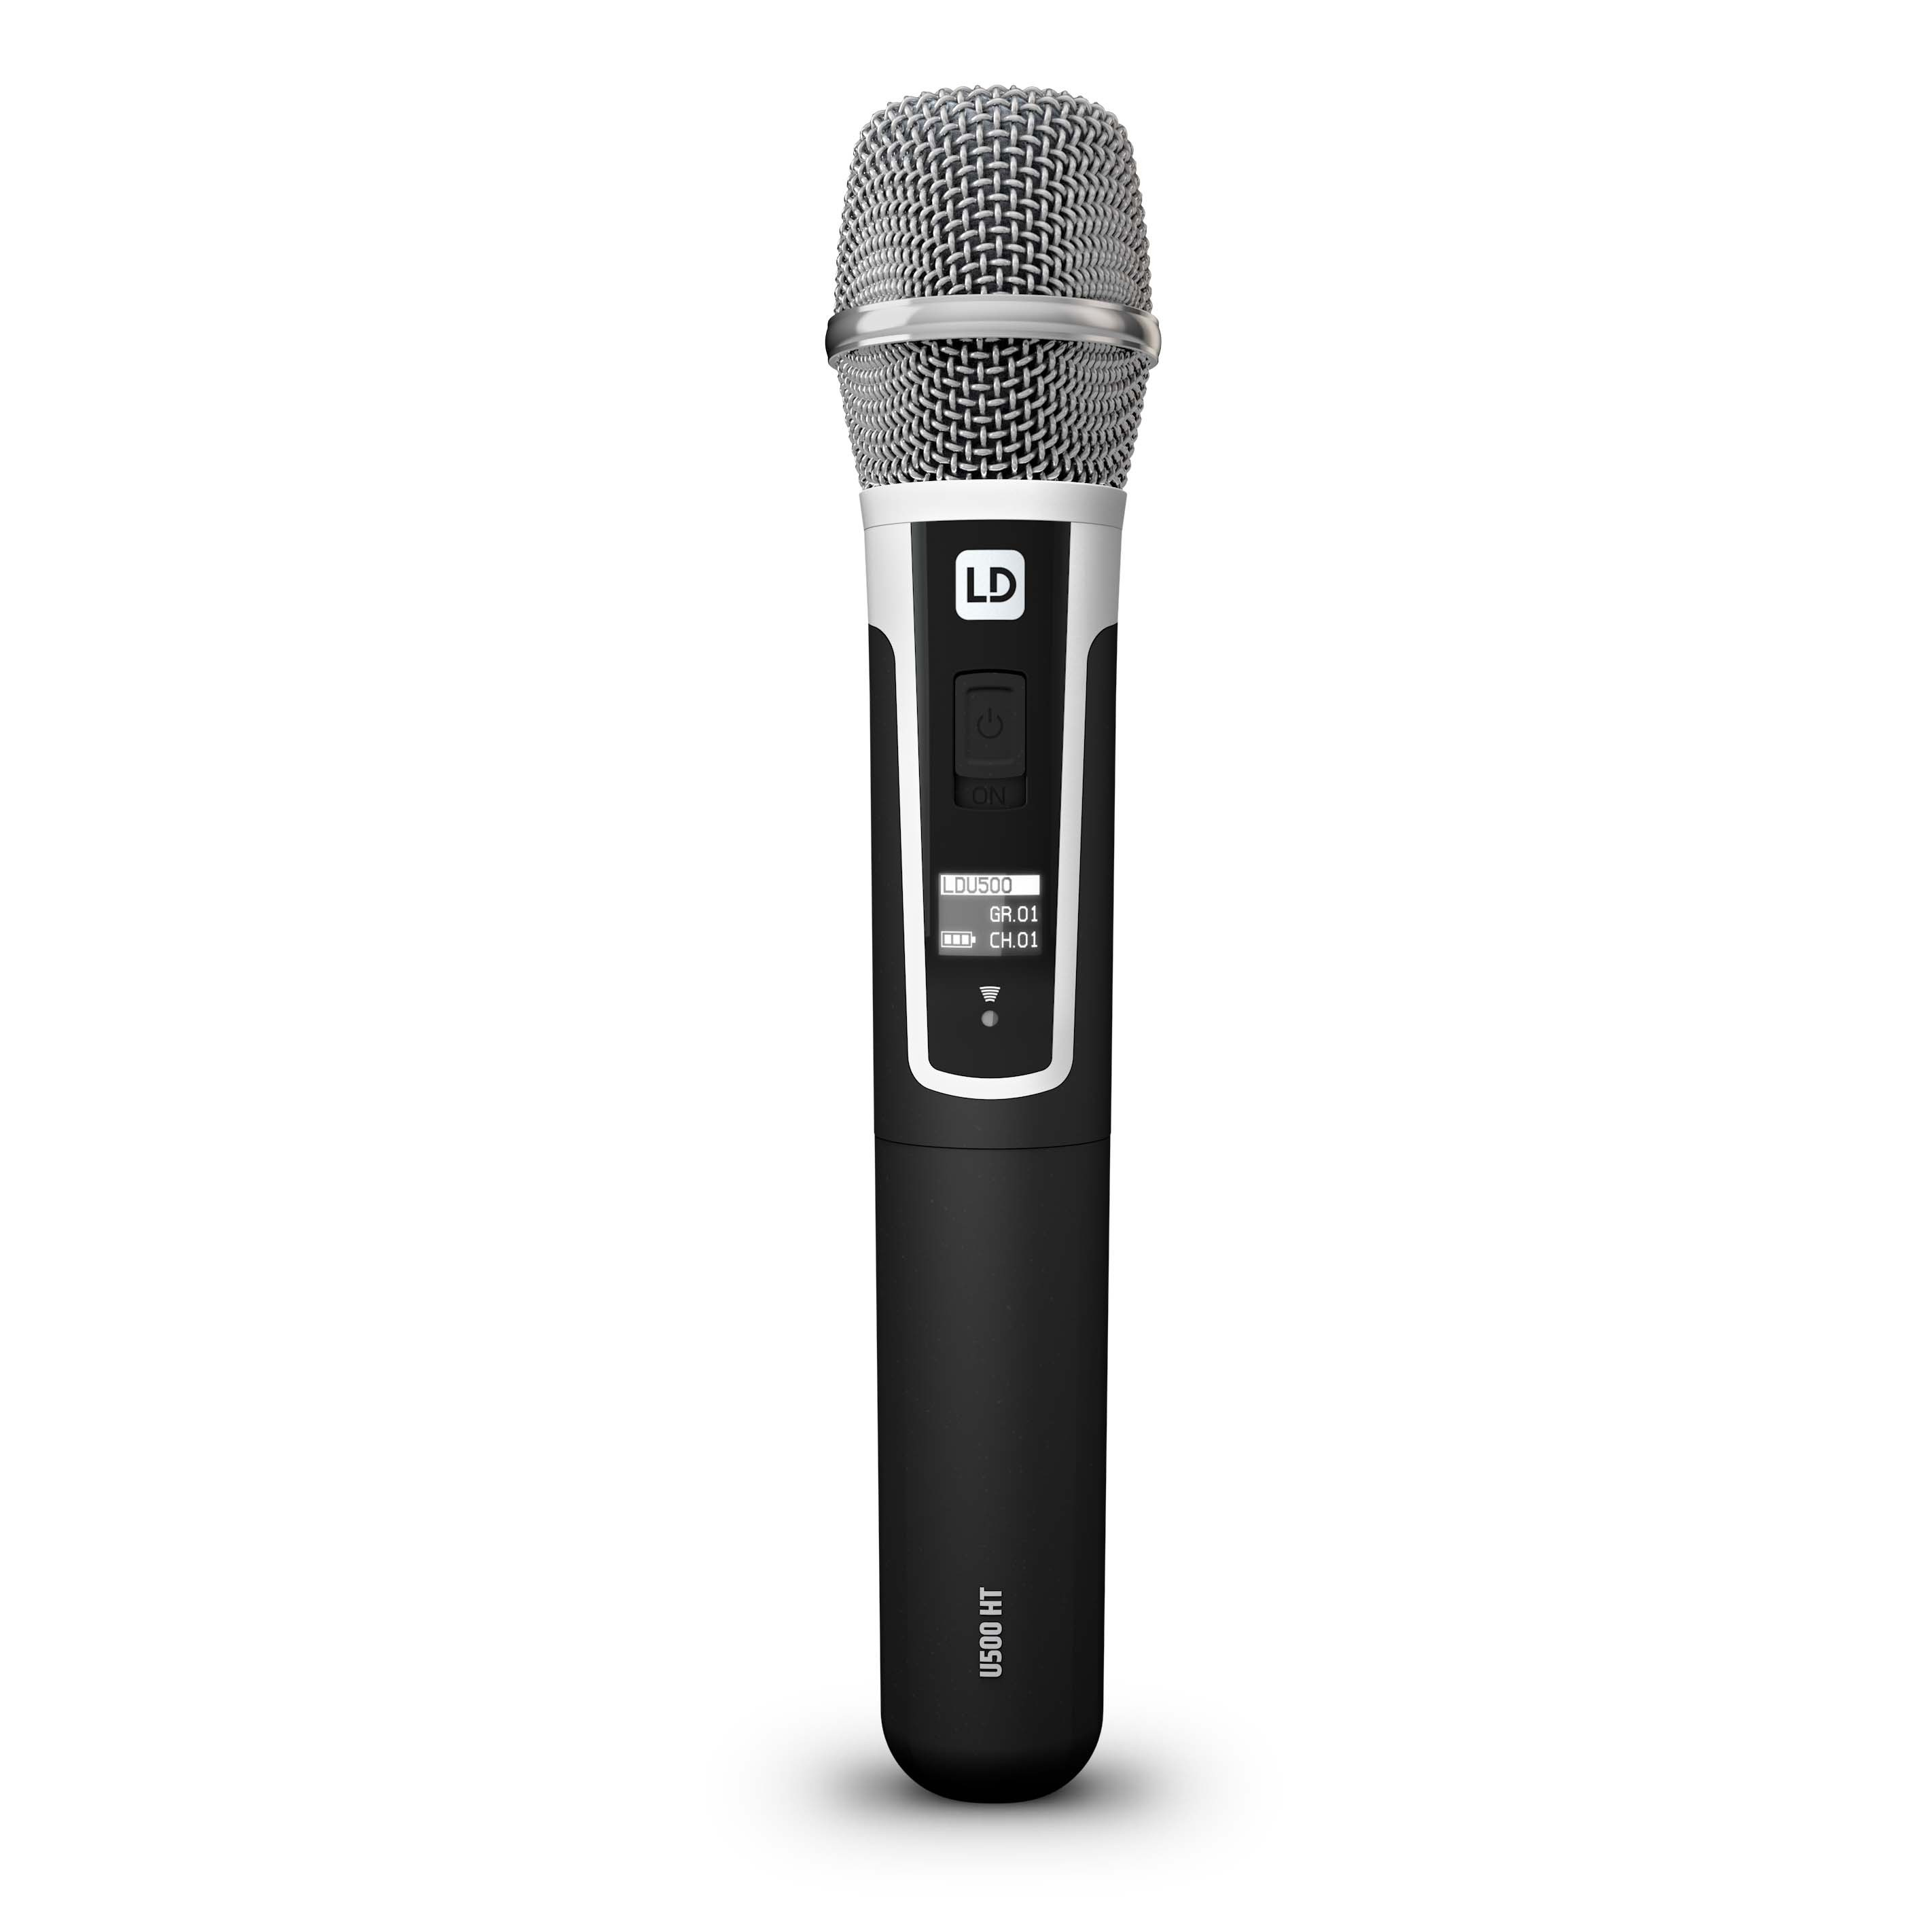 U505 HHC 2 Wireless Microphone System with 2 x Condenser Handheld Microphone